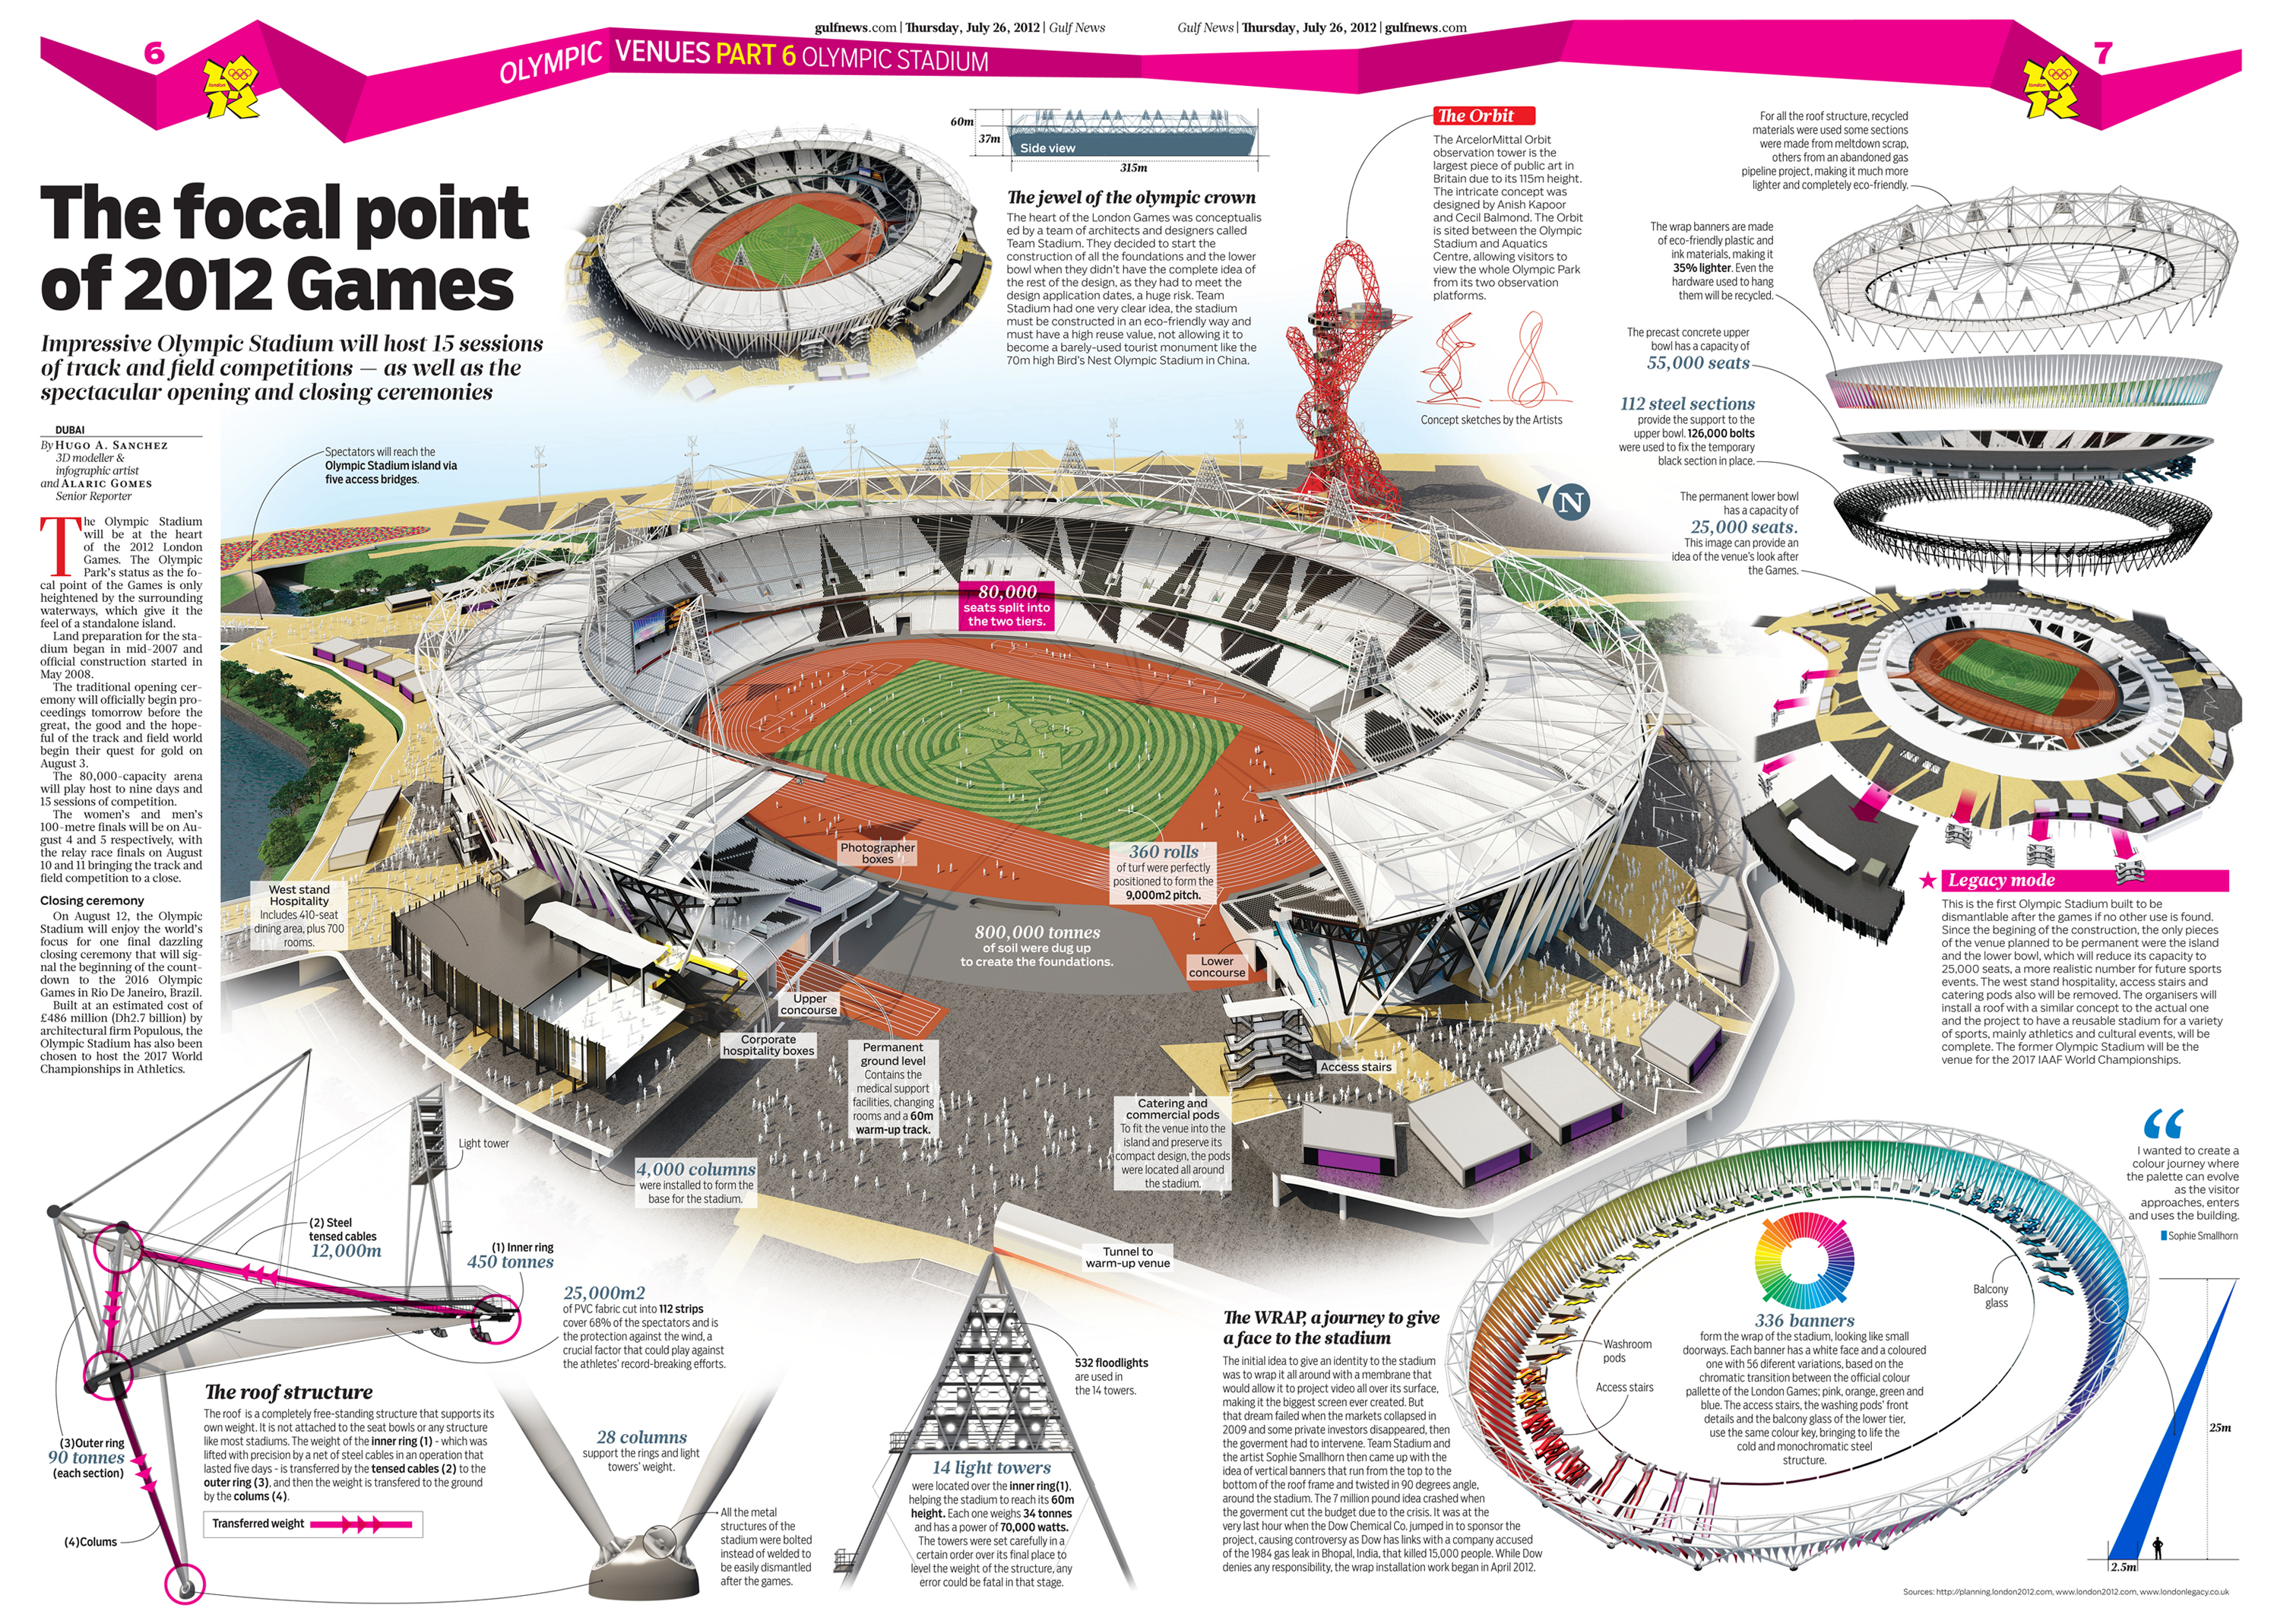 Locations Of Olympic Venues London Olympic Venues Part Olympic Stadium Caa